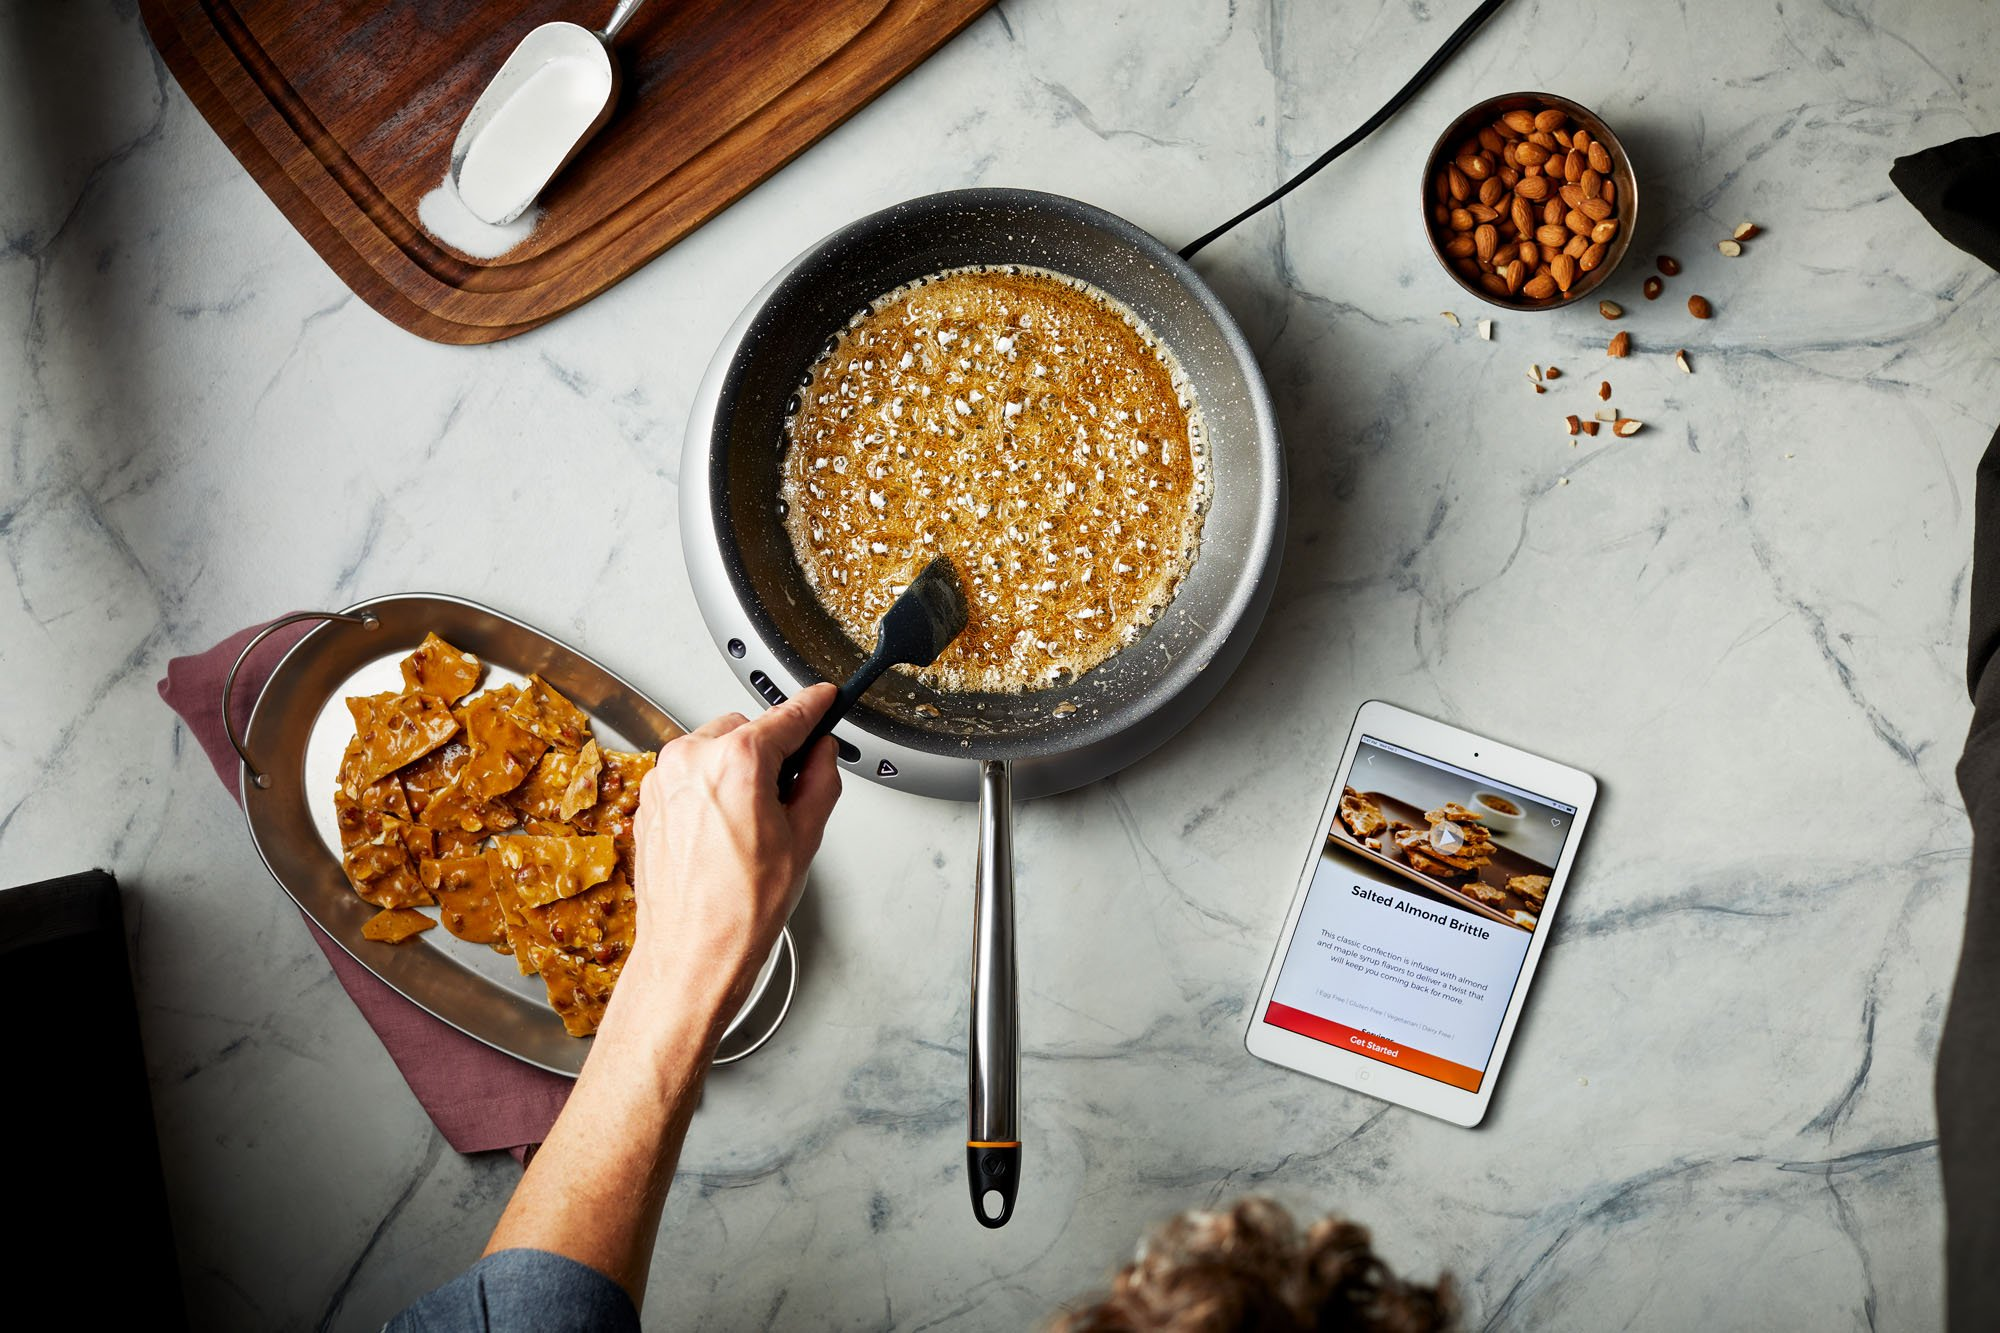 The Hestan Cue cookware and induction cooktop are connected to the app